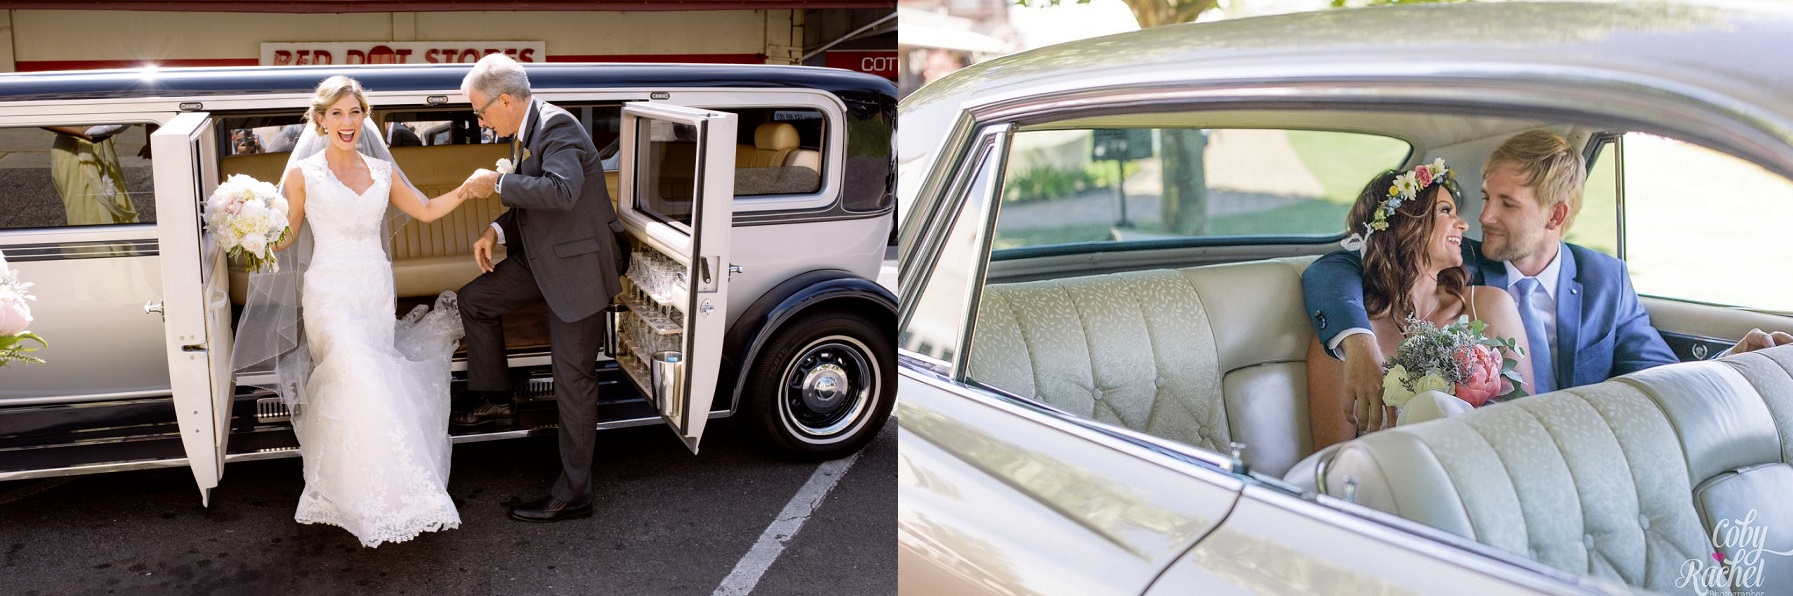 Perth Vintage Limousines Classic Cadillac Wedding Limo Hire